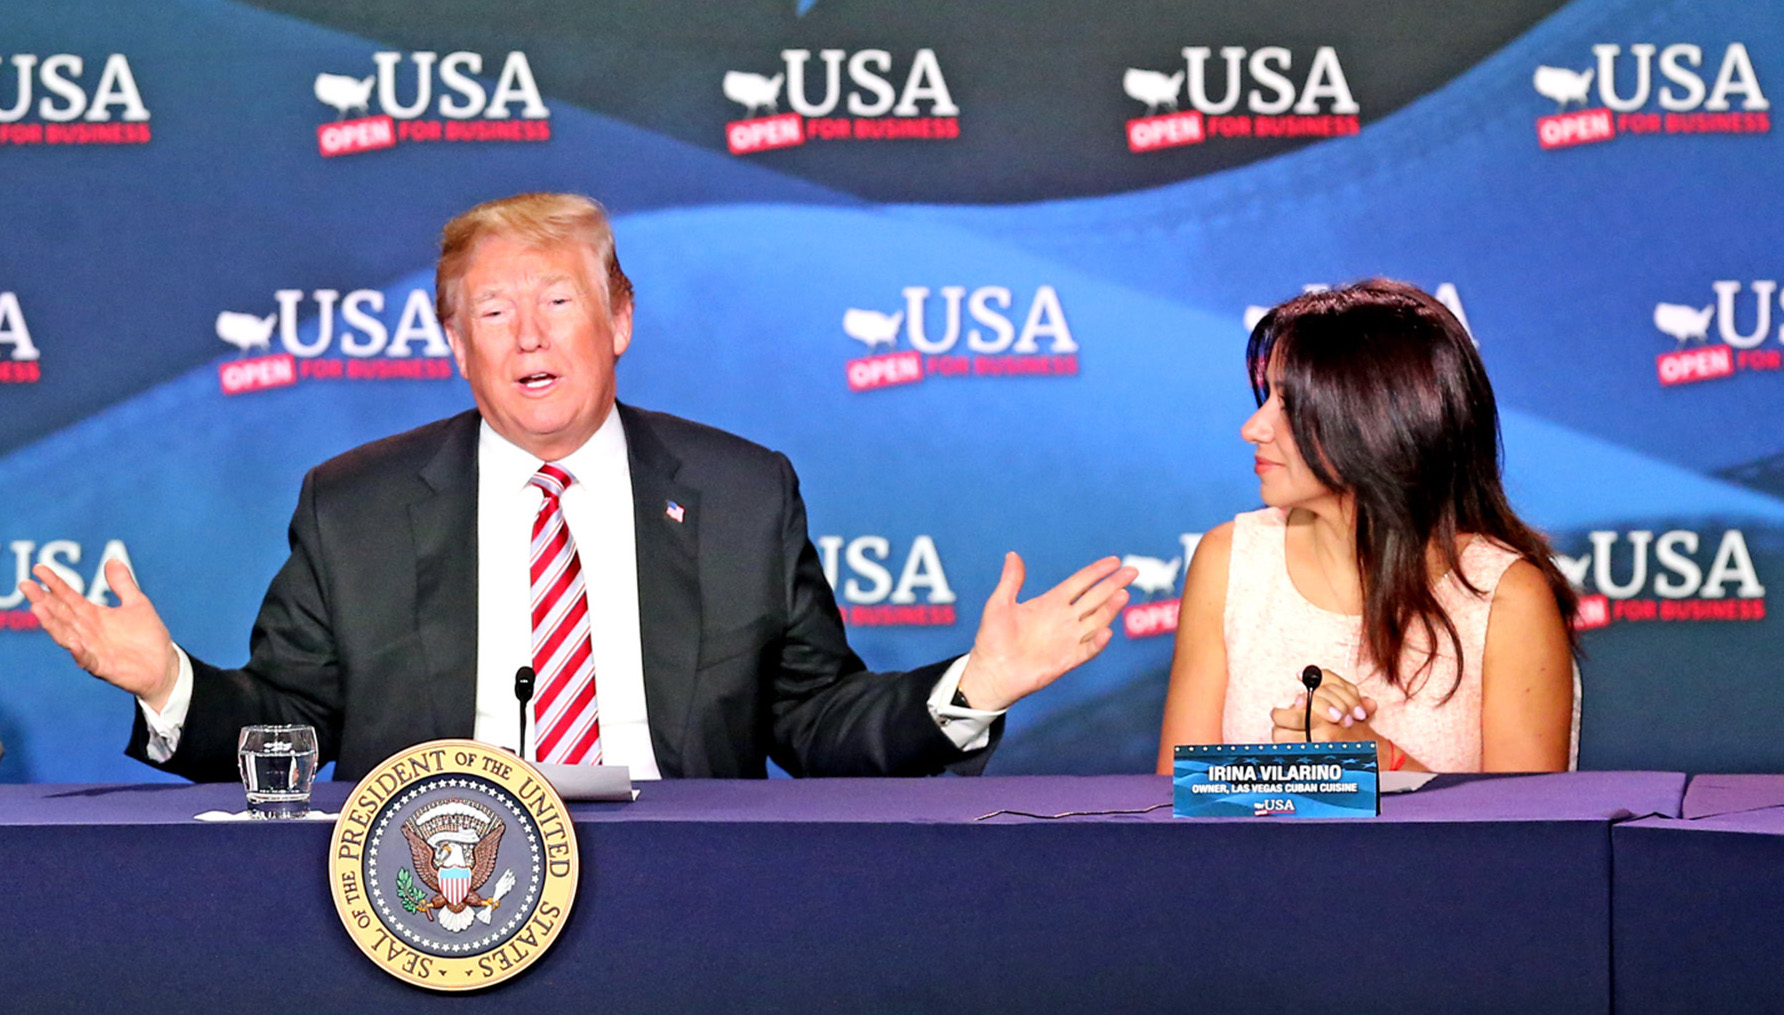 U.S. President Donald Trump, flanked by Maximo Alvarez and Irina Vilarino, talks at a Roundtable Discussion on Tax Reform on Monday, April 16, 2018 at Bucky Dent Park in Hialeah, Fla. (Charles Trainor Jr./Miami Herald/TNS)